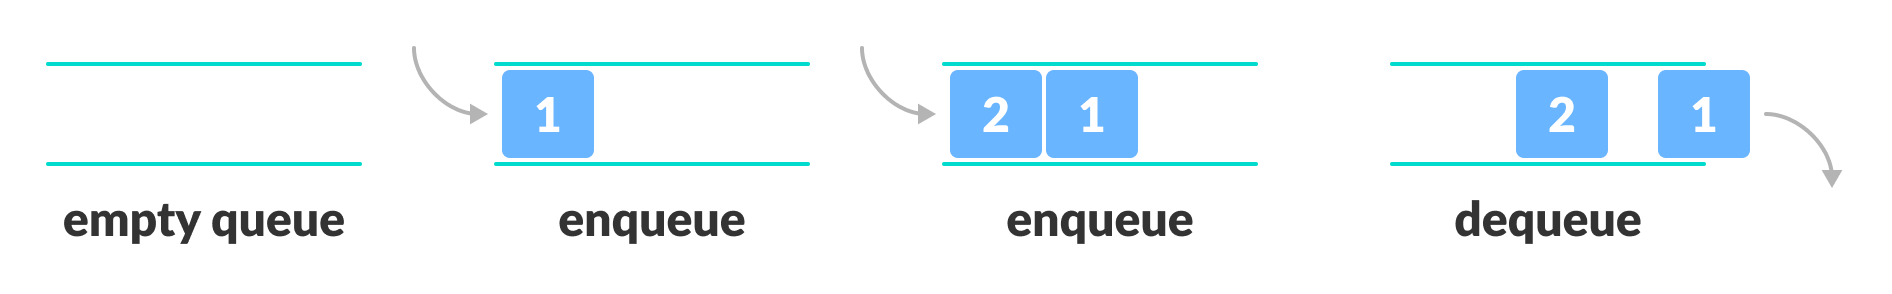 Representation of Queue in first in first out principle